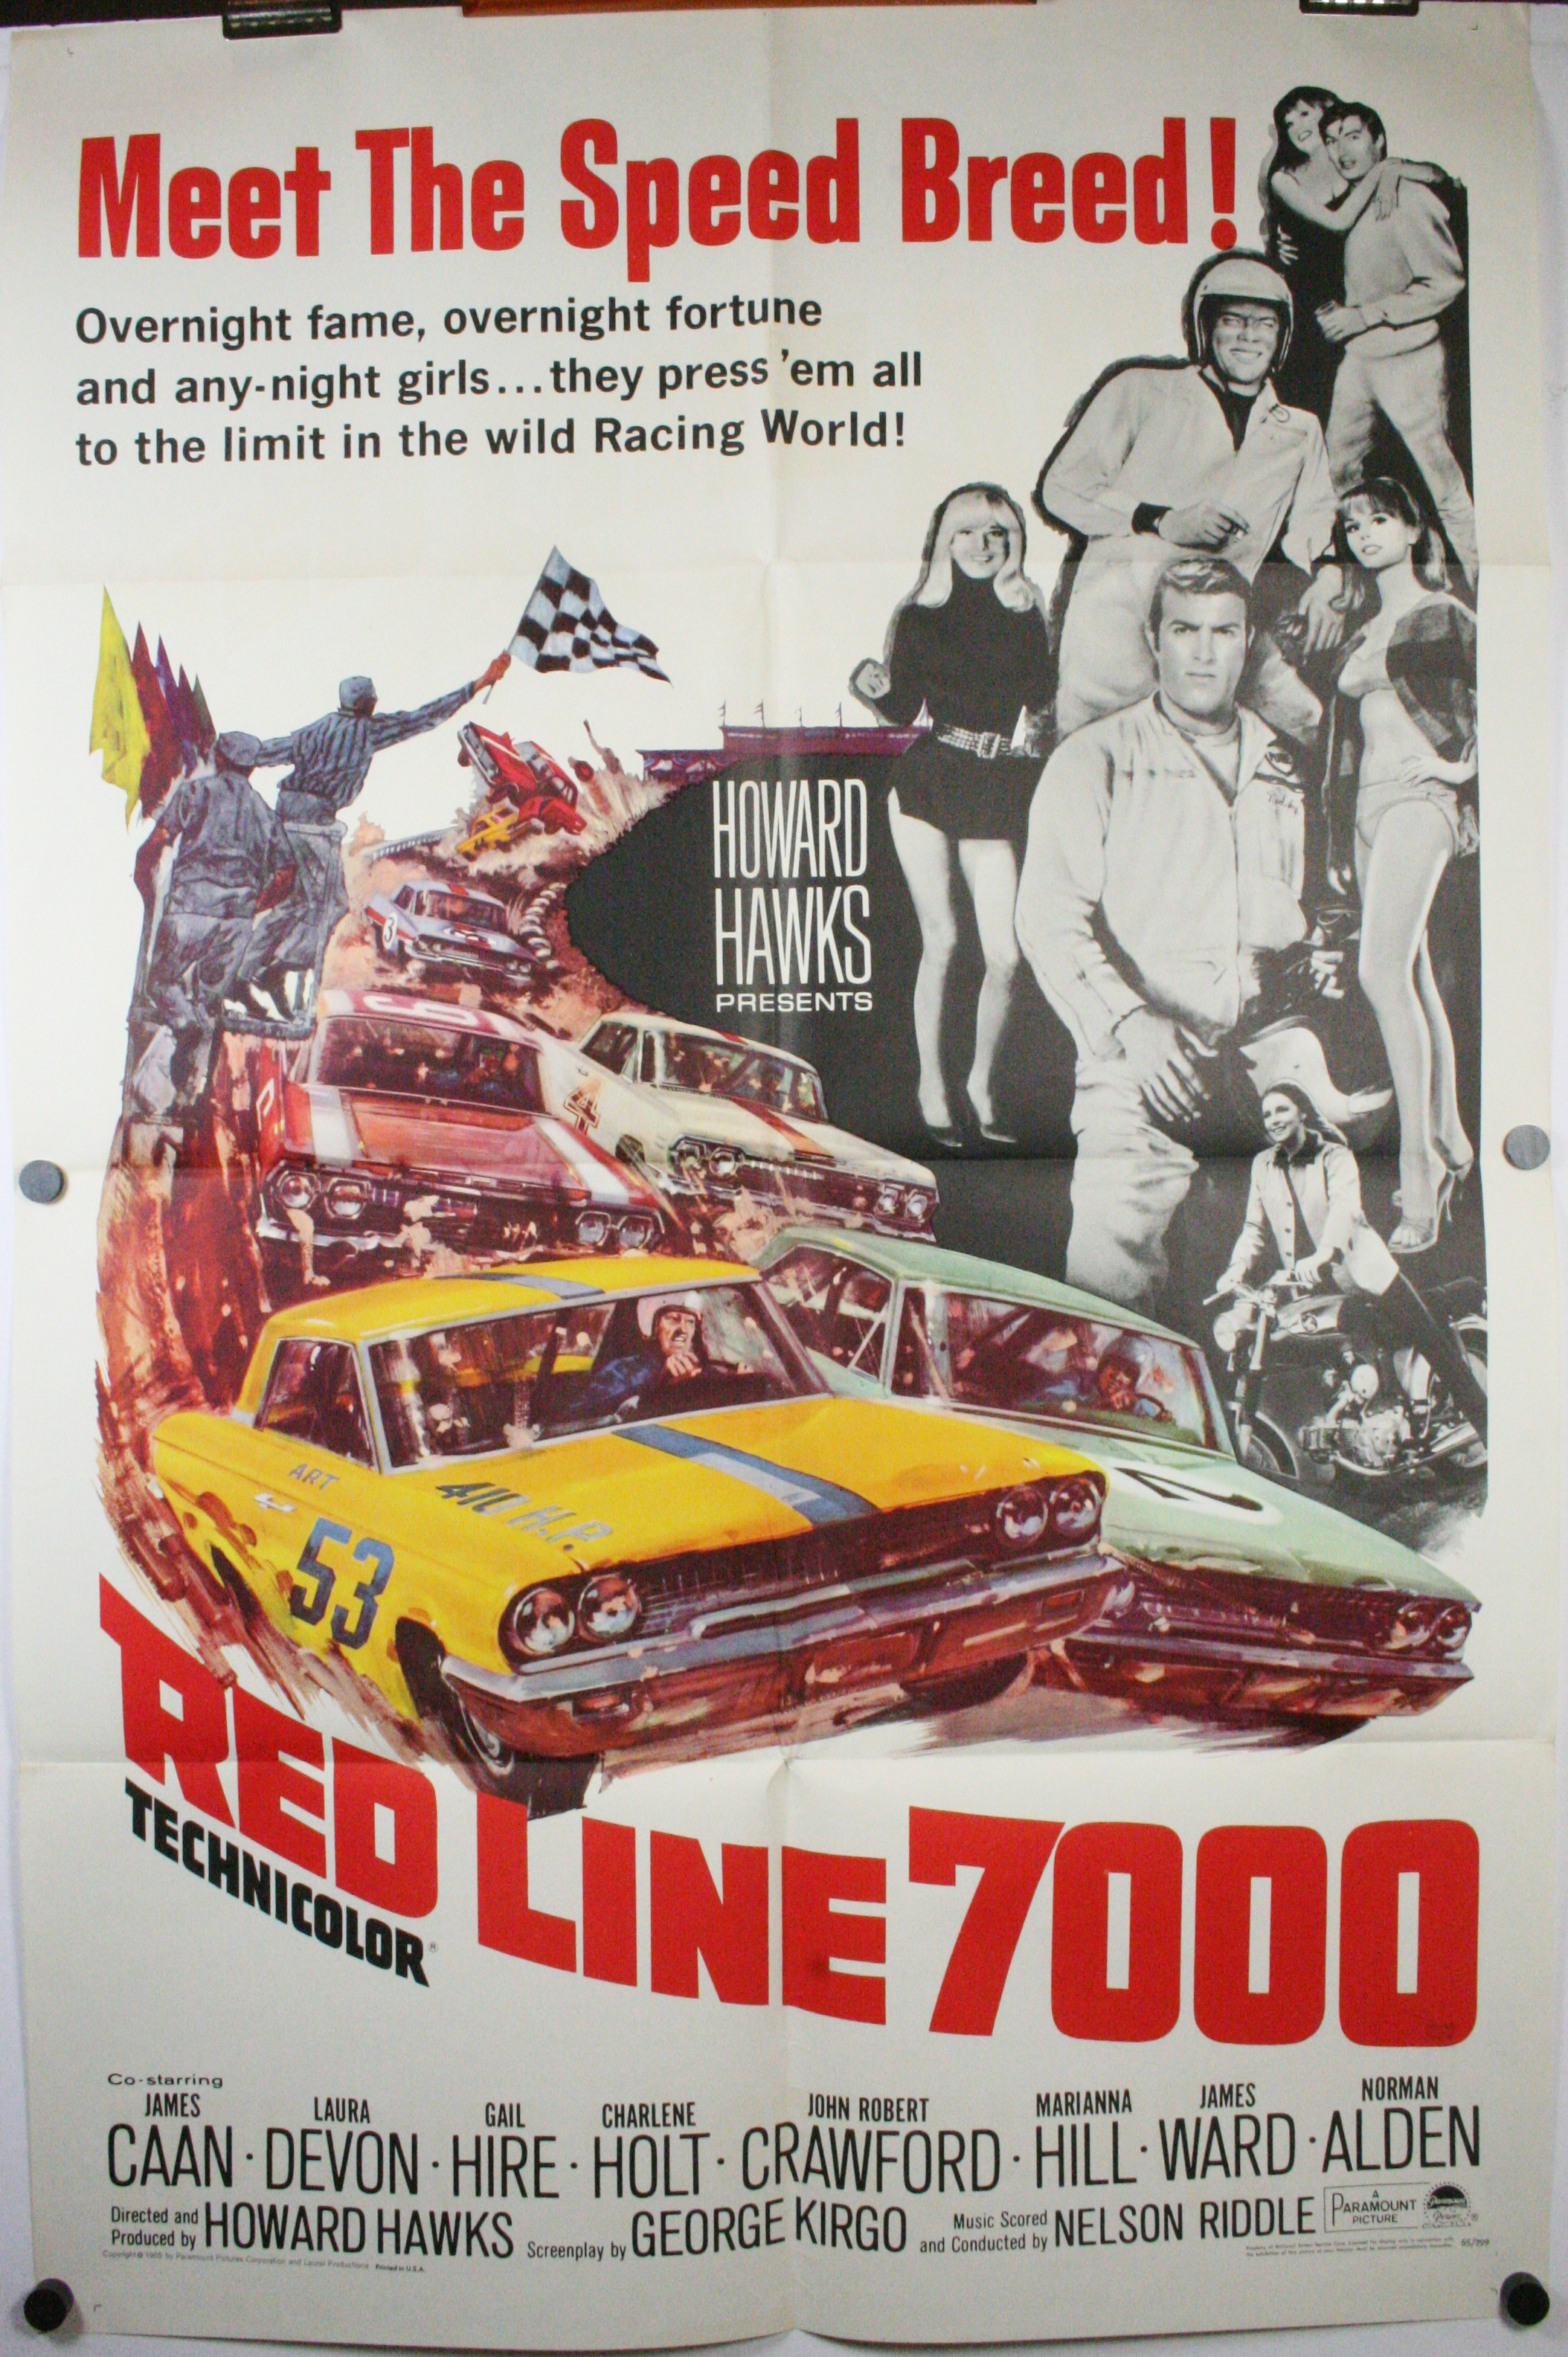 red line 7000 original car racing hot rod movie theater